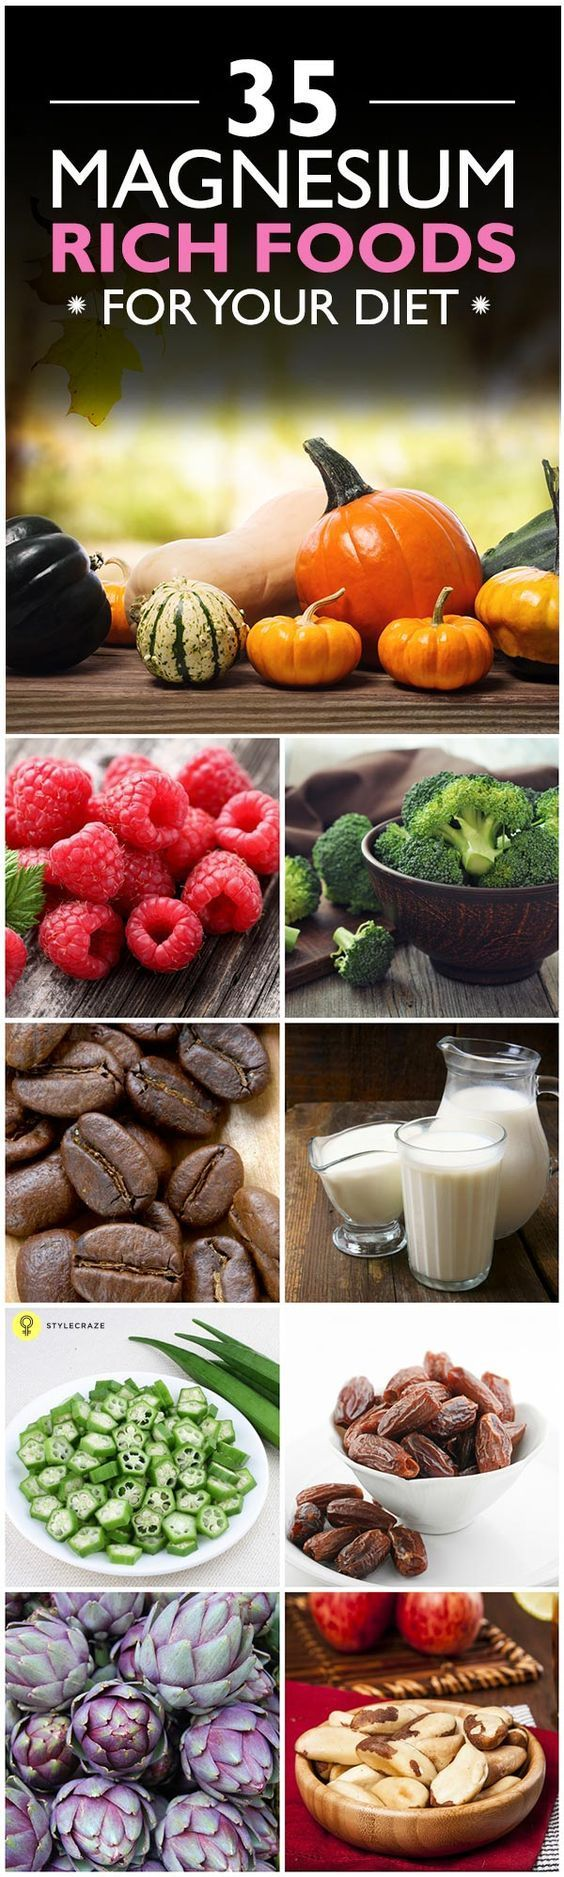 Did you know that deficiency of magnesium can lead to